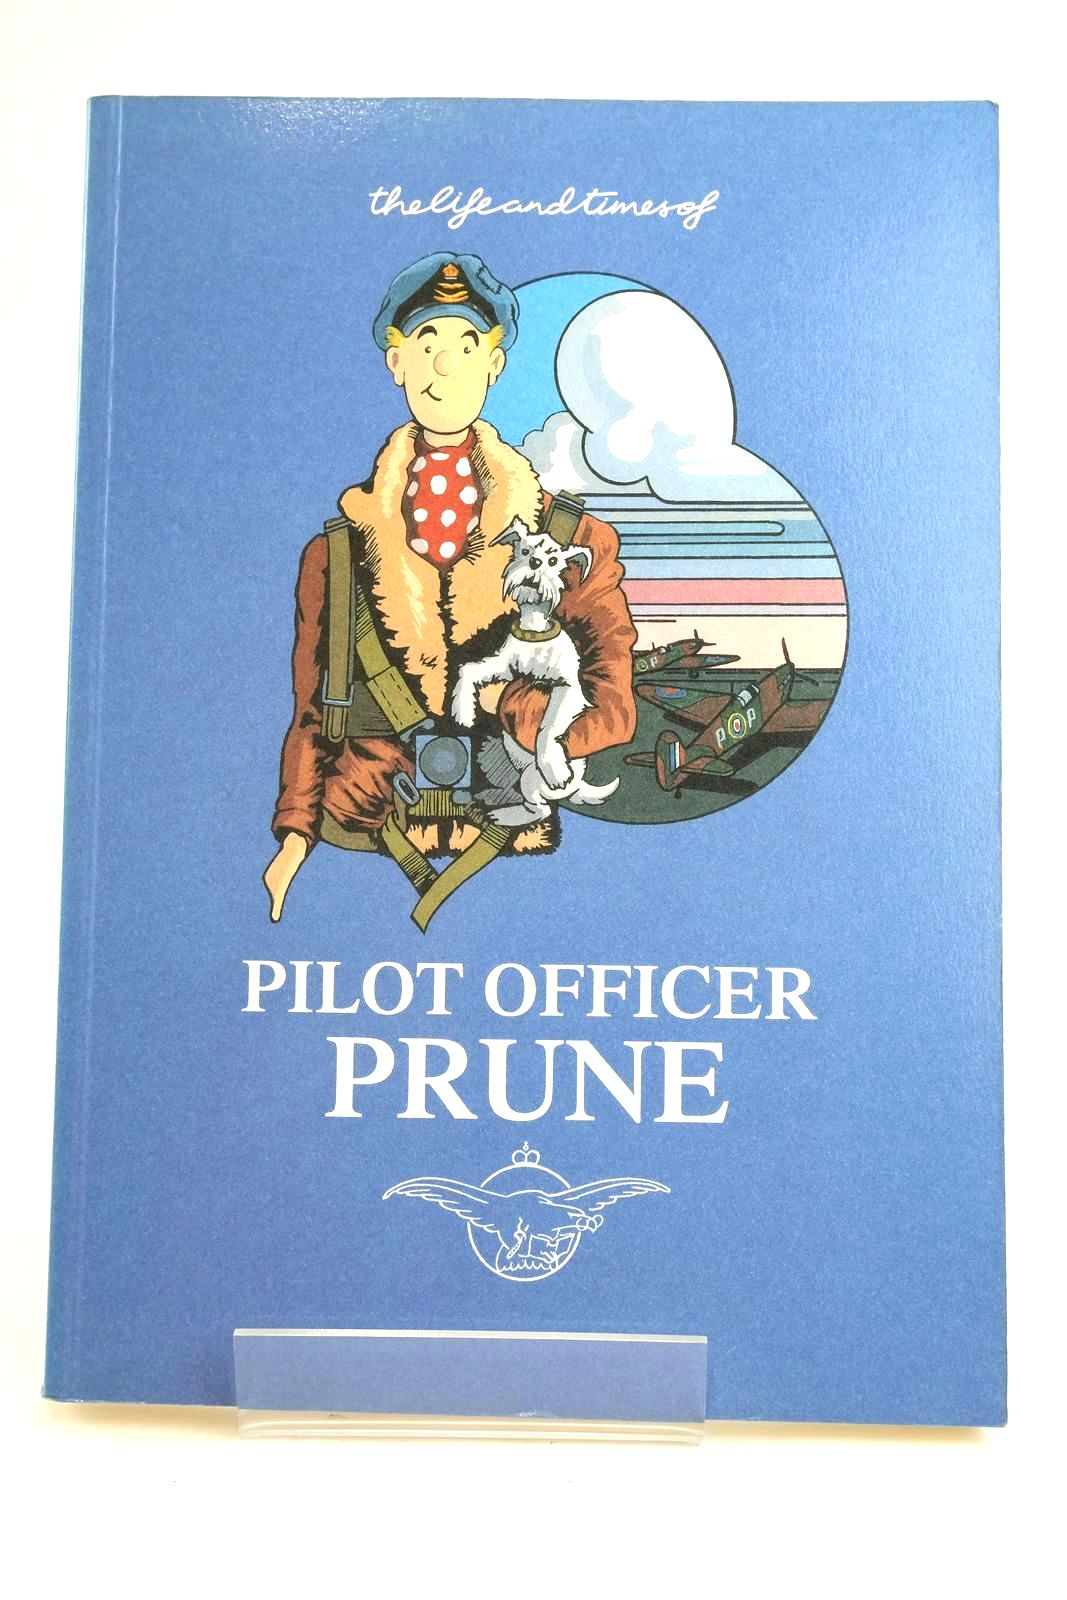 Photo of THE LIFE AND TIMES OF PILOT OFFICER PRUNE written by Hamilton, Tim illustrated by Hamilton, Tim published by HMSO (STOCK CODE: 1319609)  for sale by Stella & Rose's Books